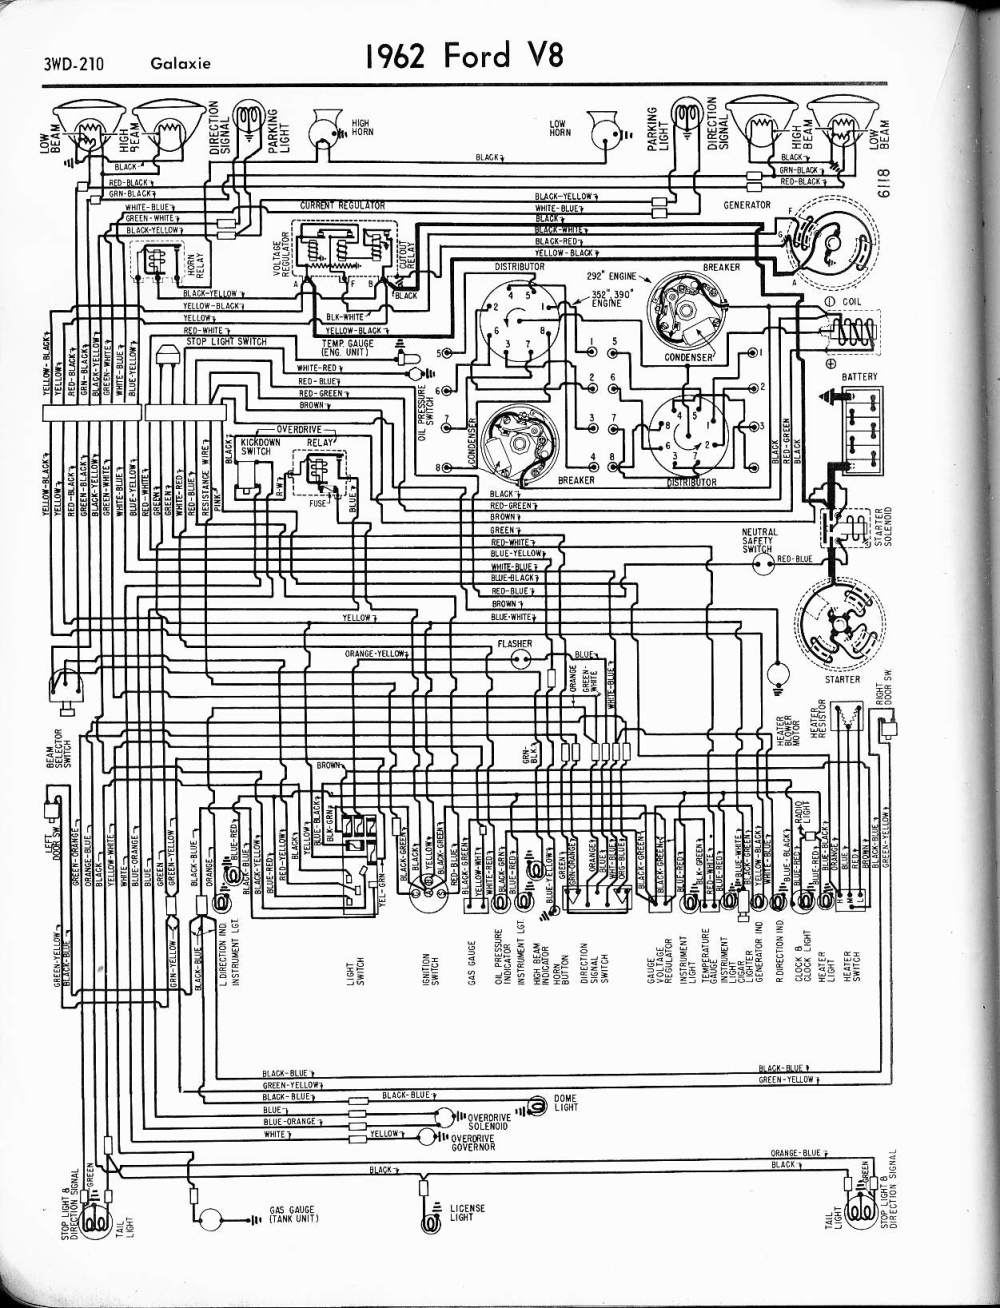 medium resolution of 1967 ford galaxie wiring diagram wiring schematic data 1987 ford f 250 wiring diagram 1967 ford f250 wiring diagram